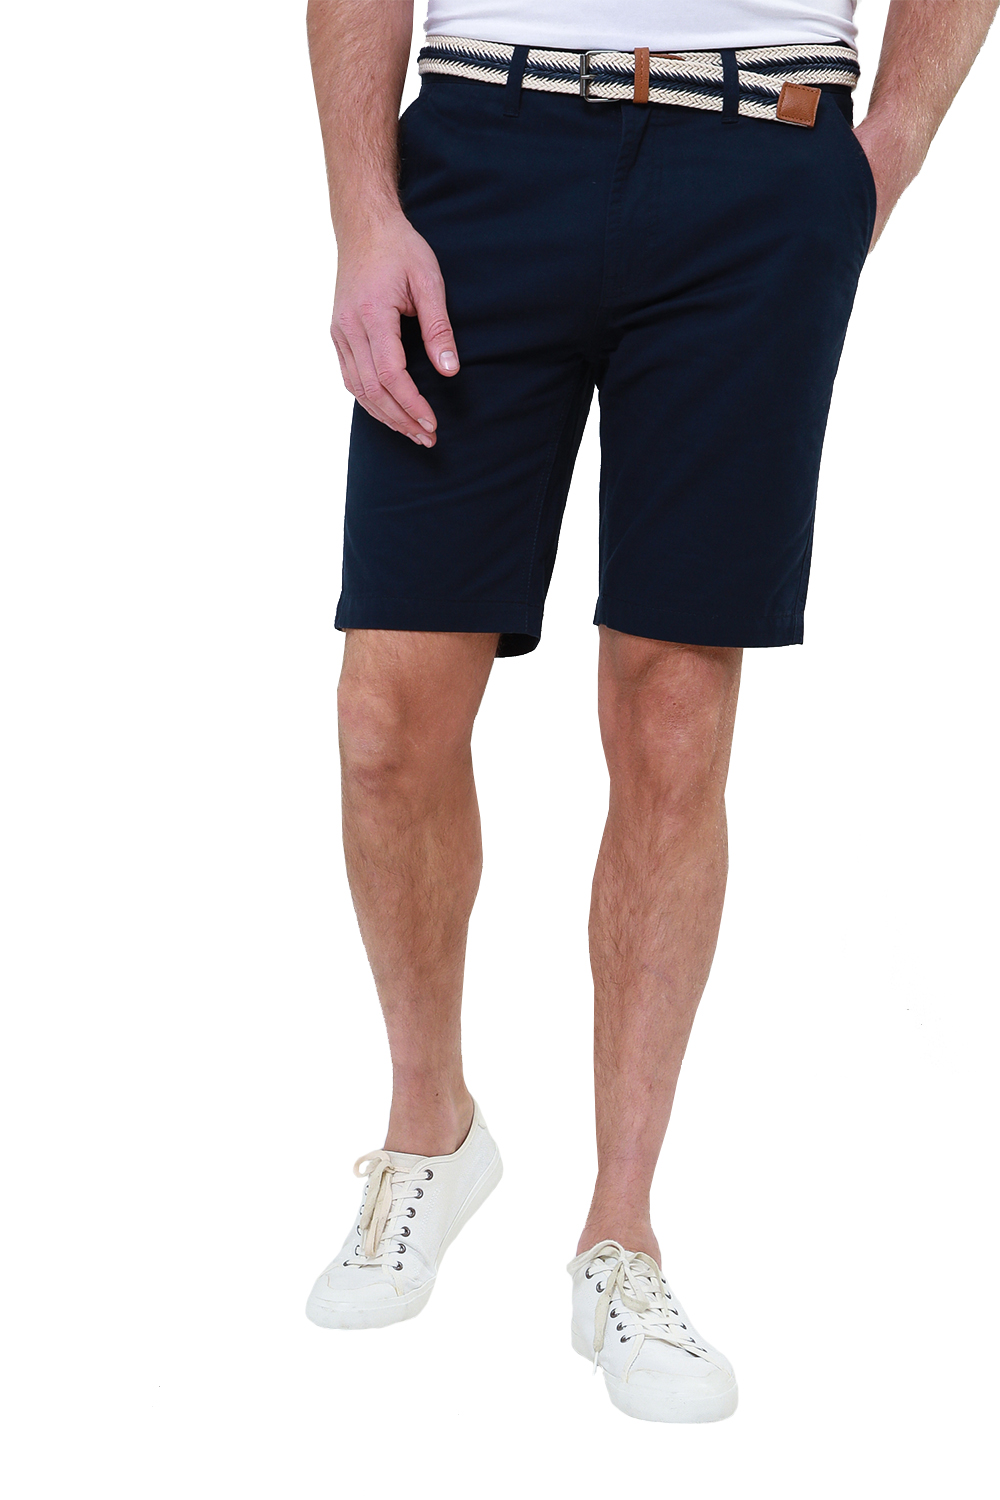 Threadbare-Mens-Slim-Fit-Belted-Chino-Shorts-Summer-Casual-Cotton-Smart-Bottoms thumbnail 21